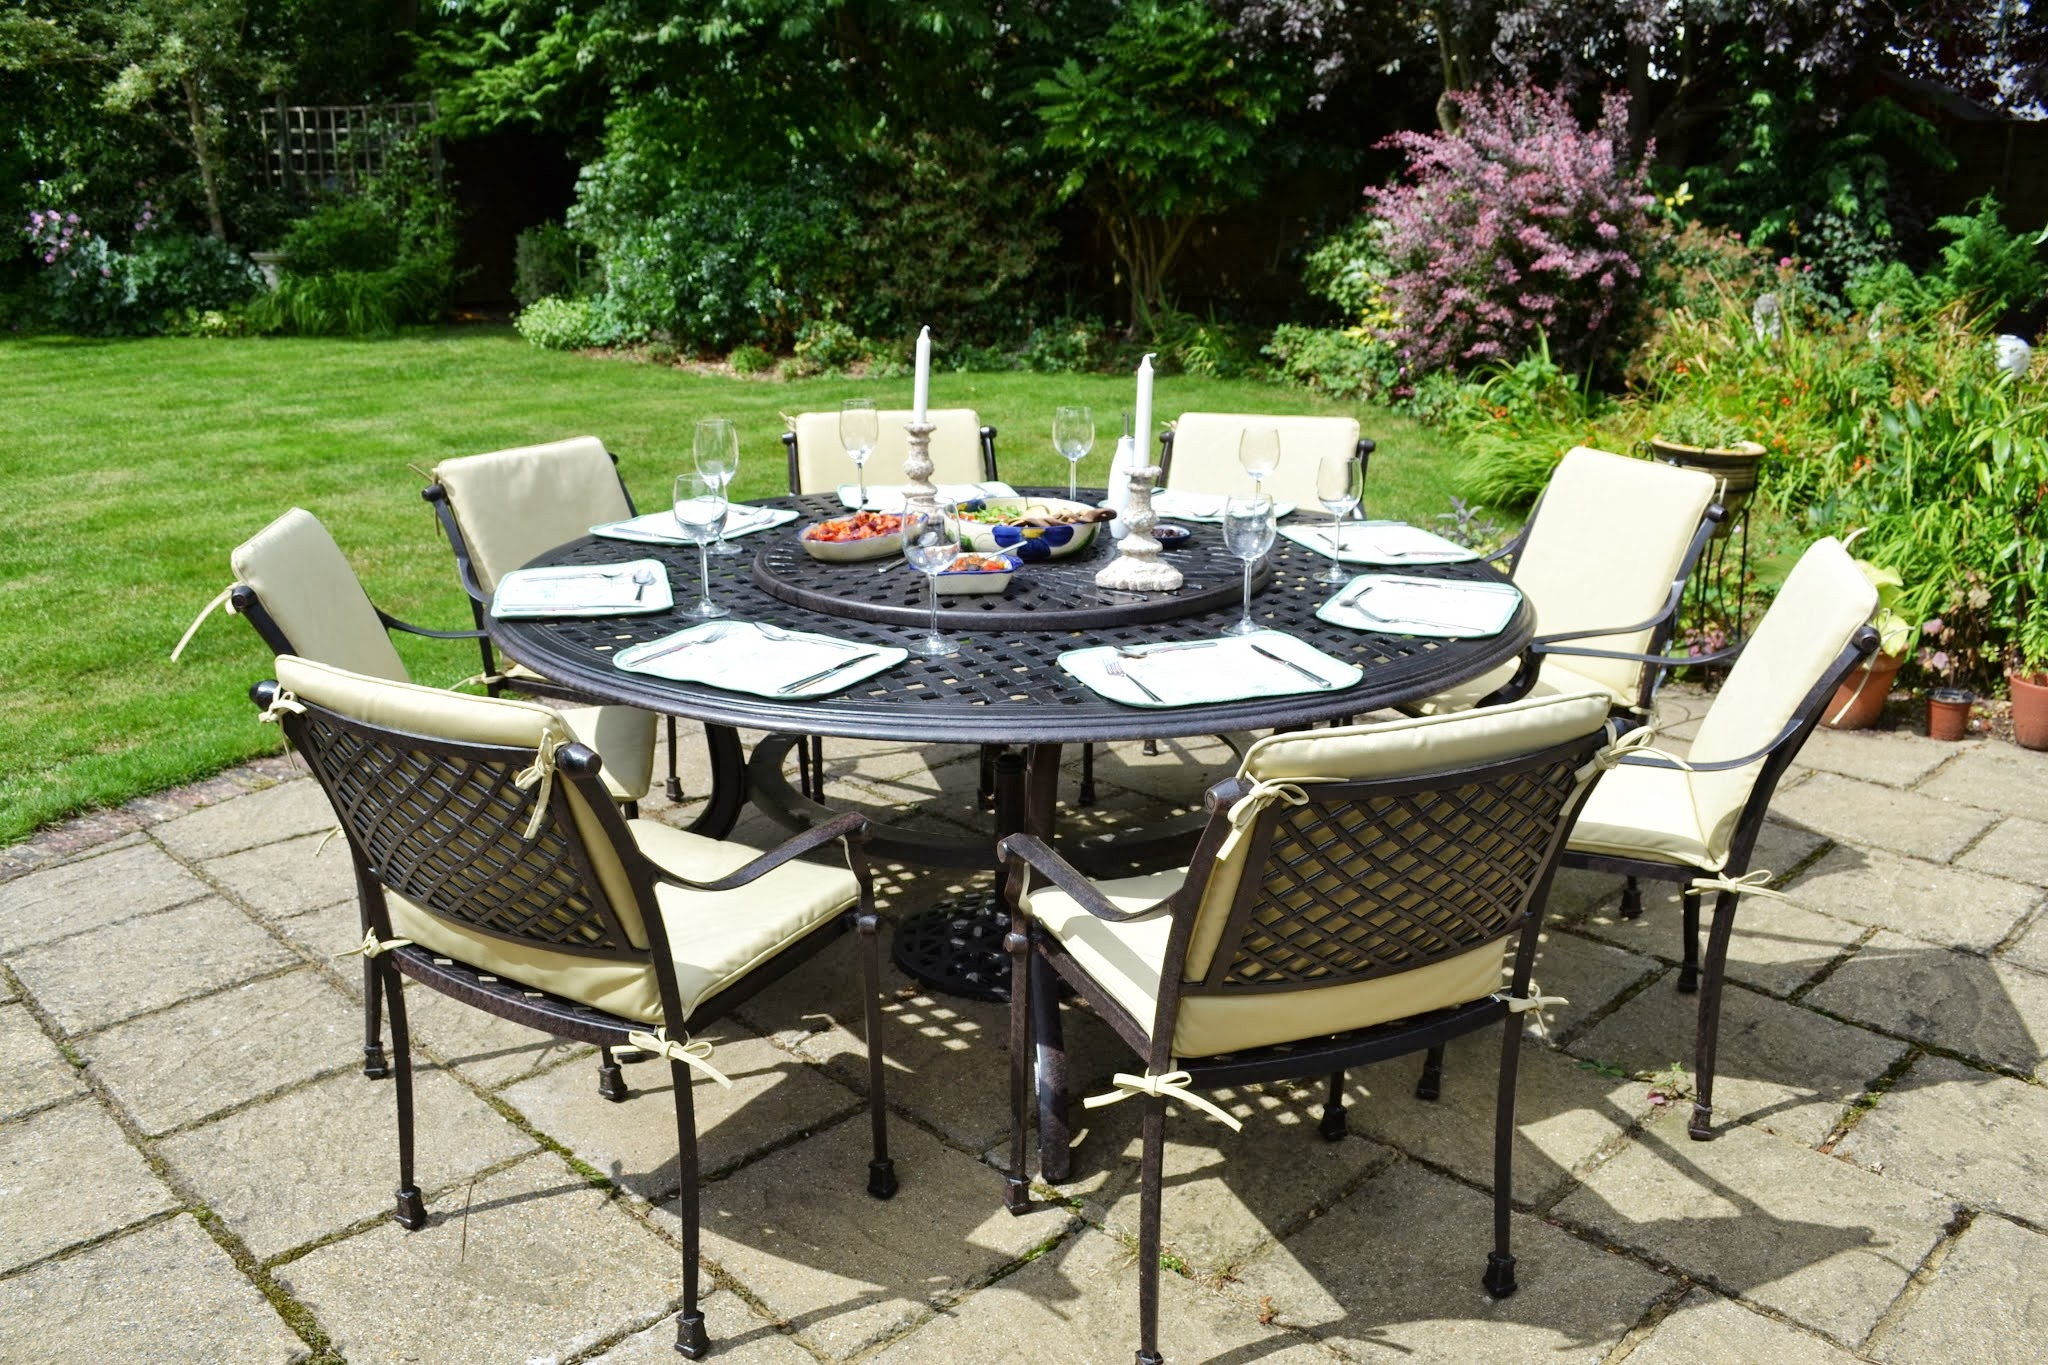 Comparatif tables de jardin plateau tournant le blog de lazy susan - Plateau tournant table ...